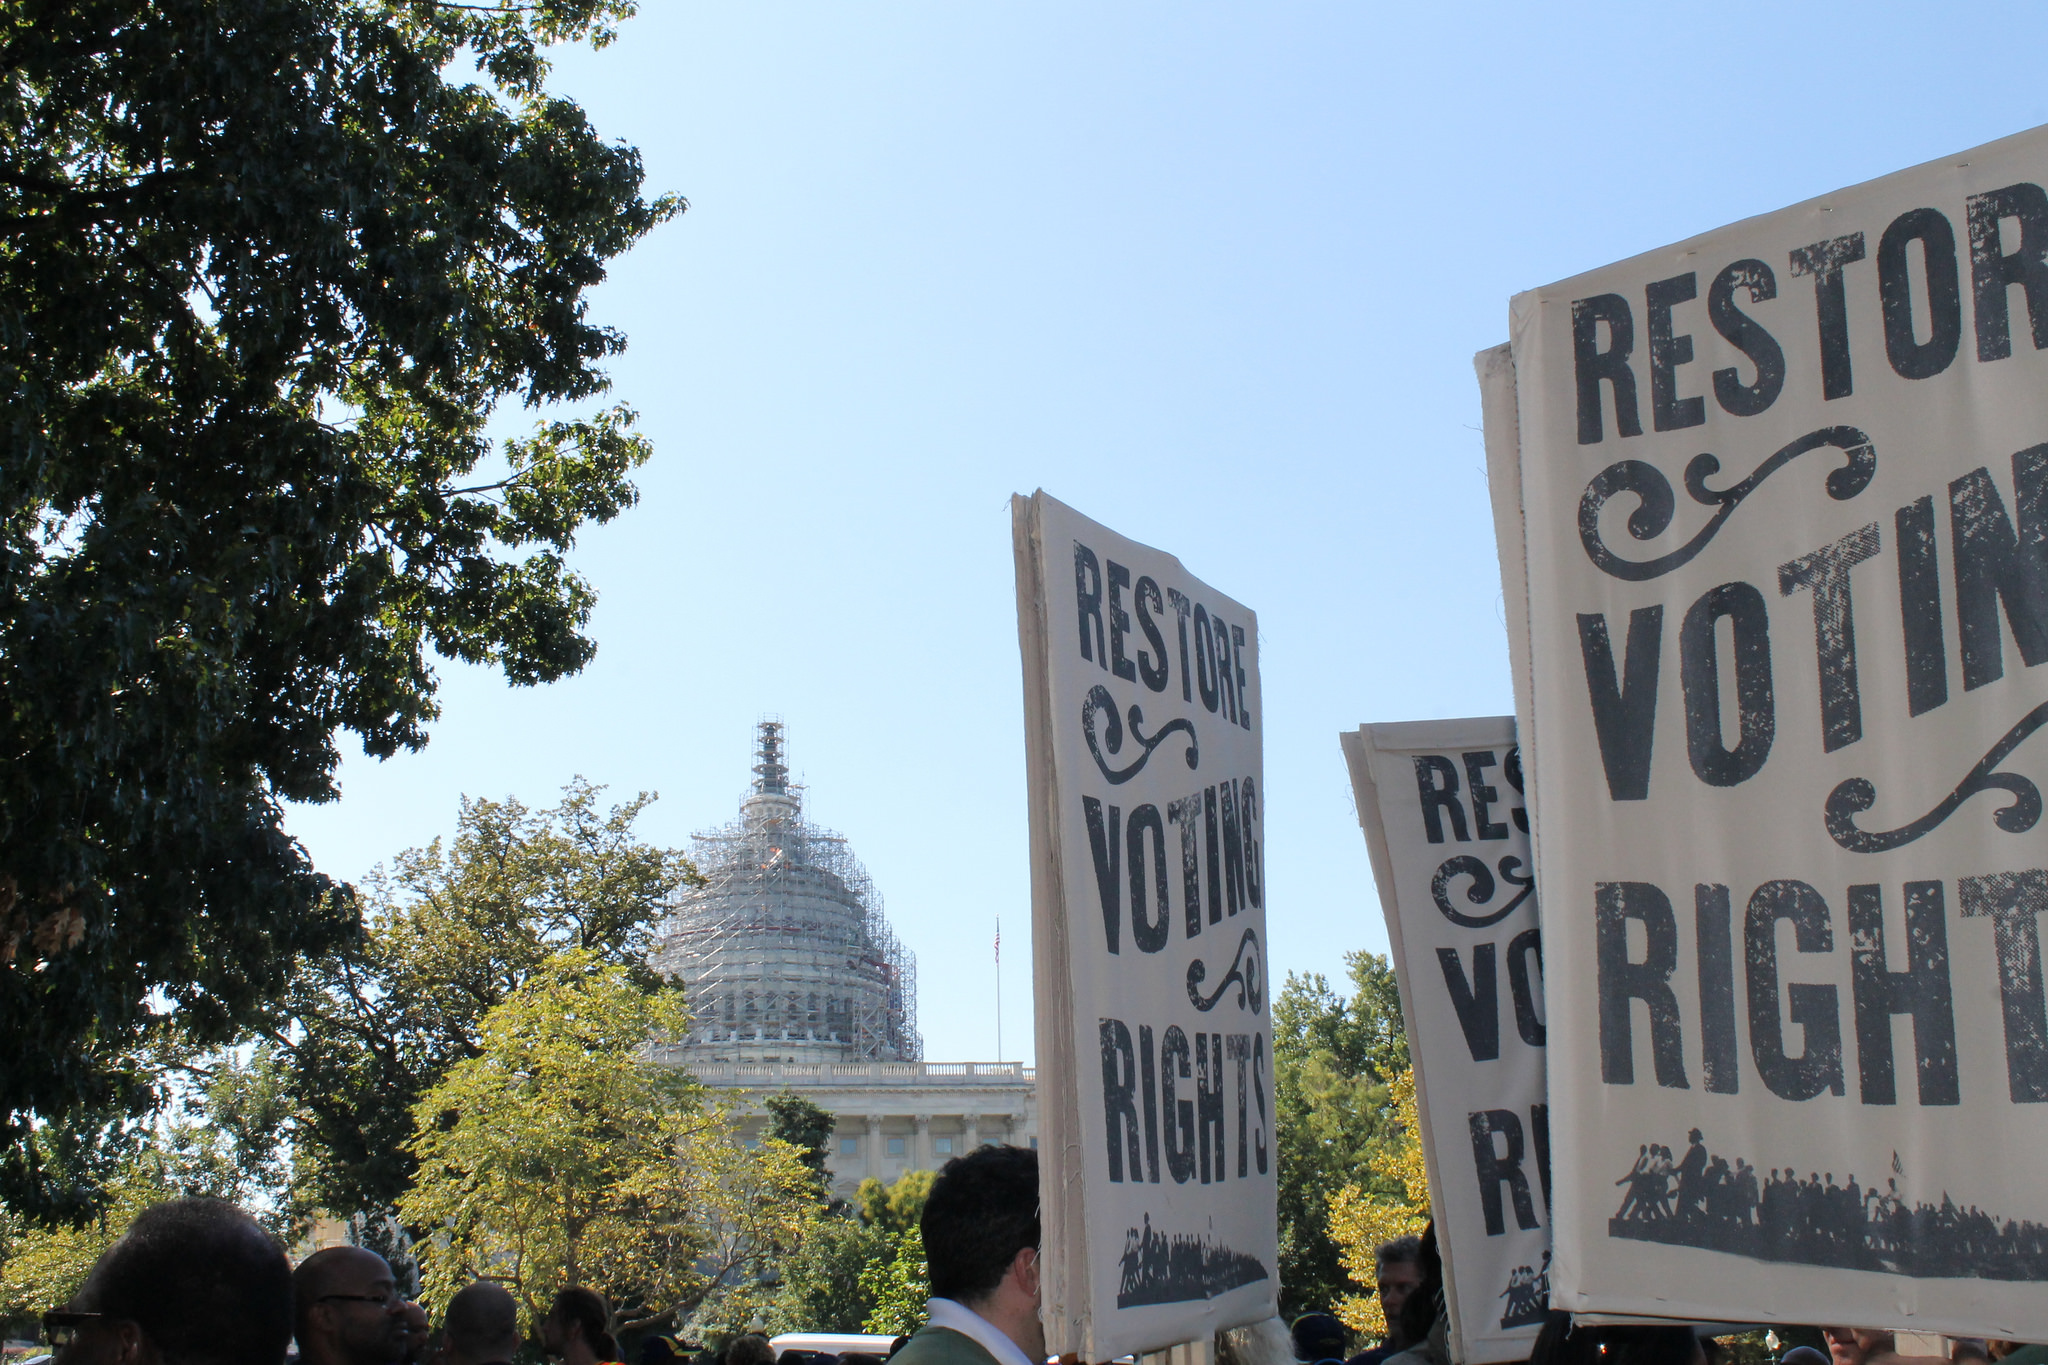 A call for voting rights at the America's Journey for Justice Rally on Capitol Hill in September